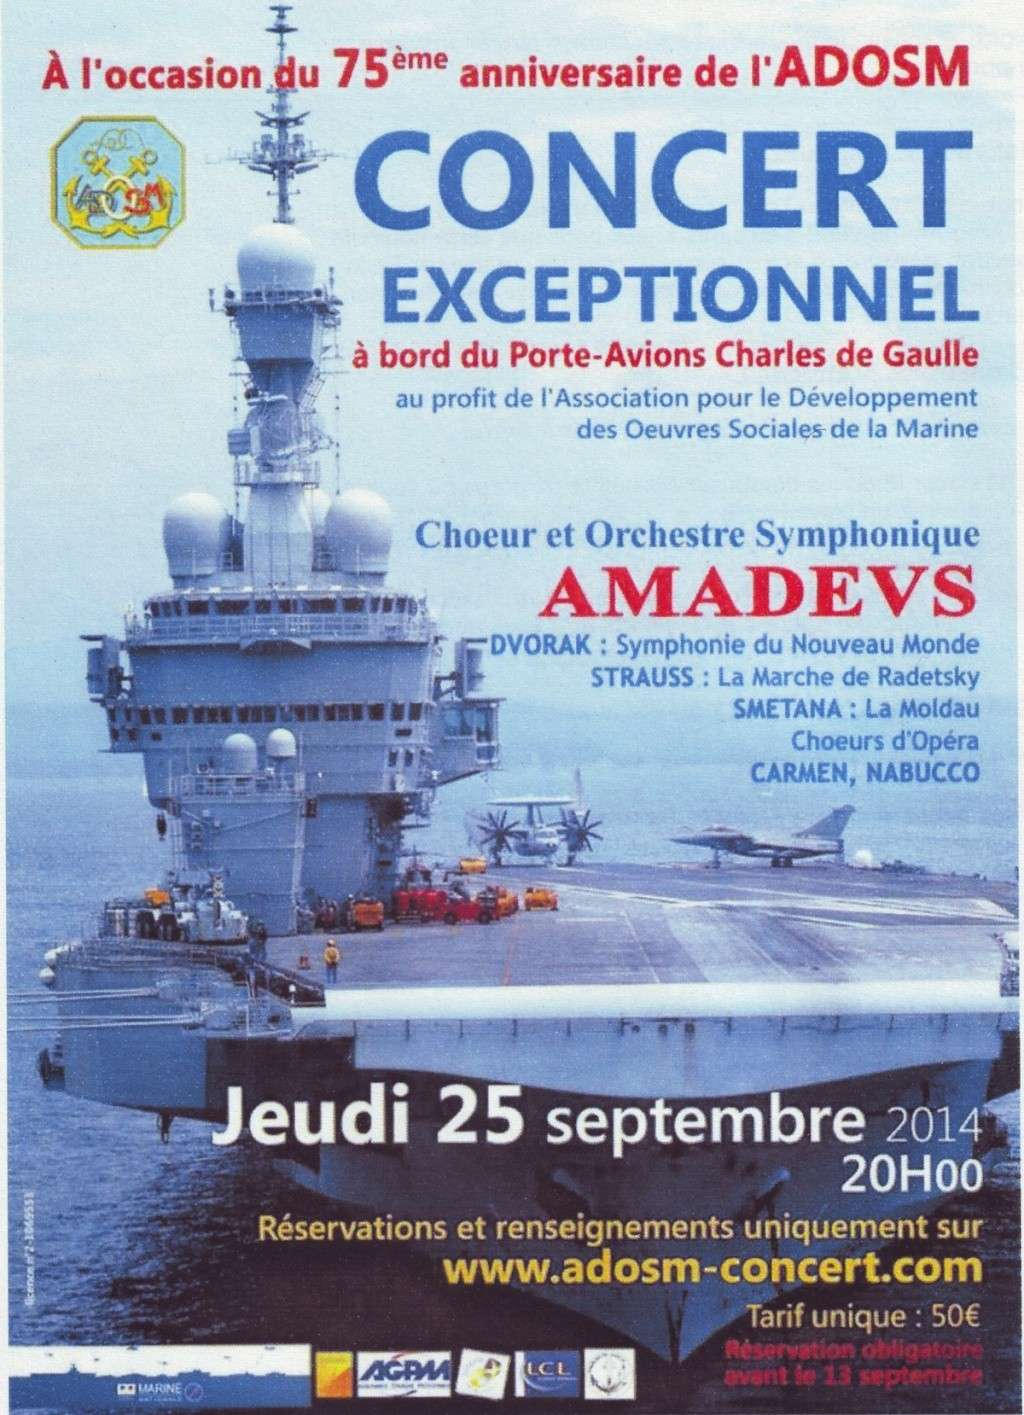 [ Associations anciens Marins ] ADOSM Toulon 2014 Imagec11